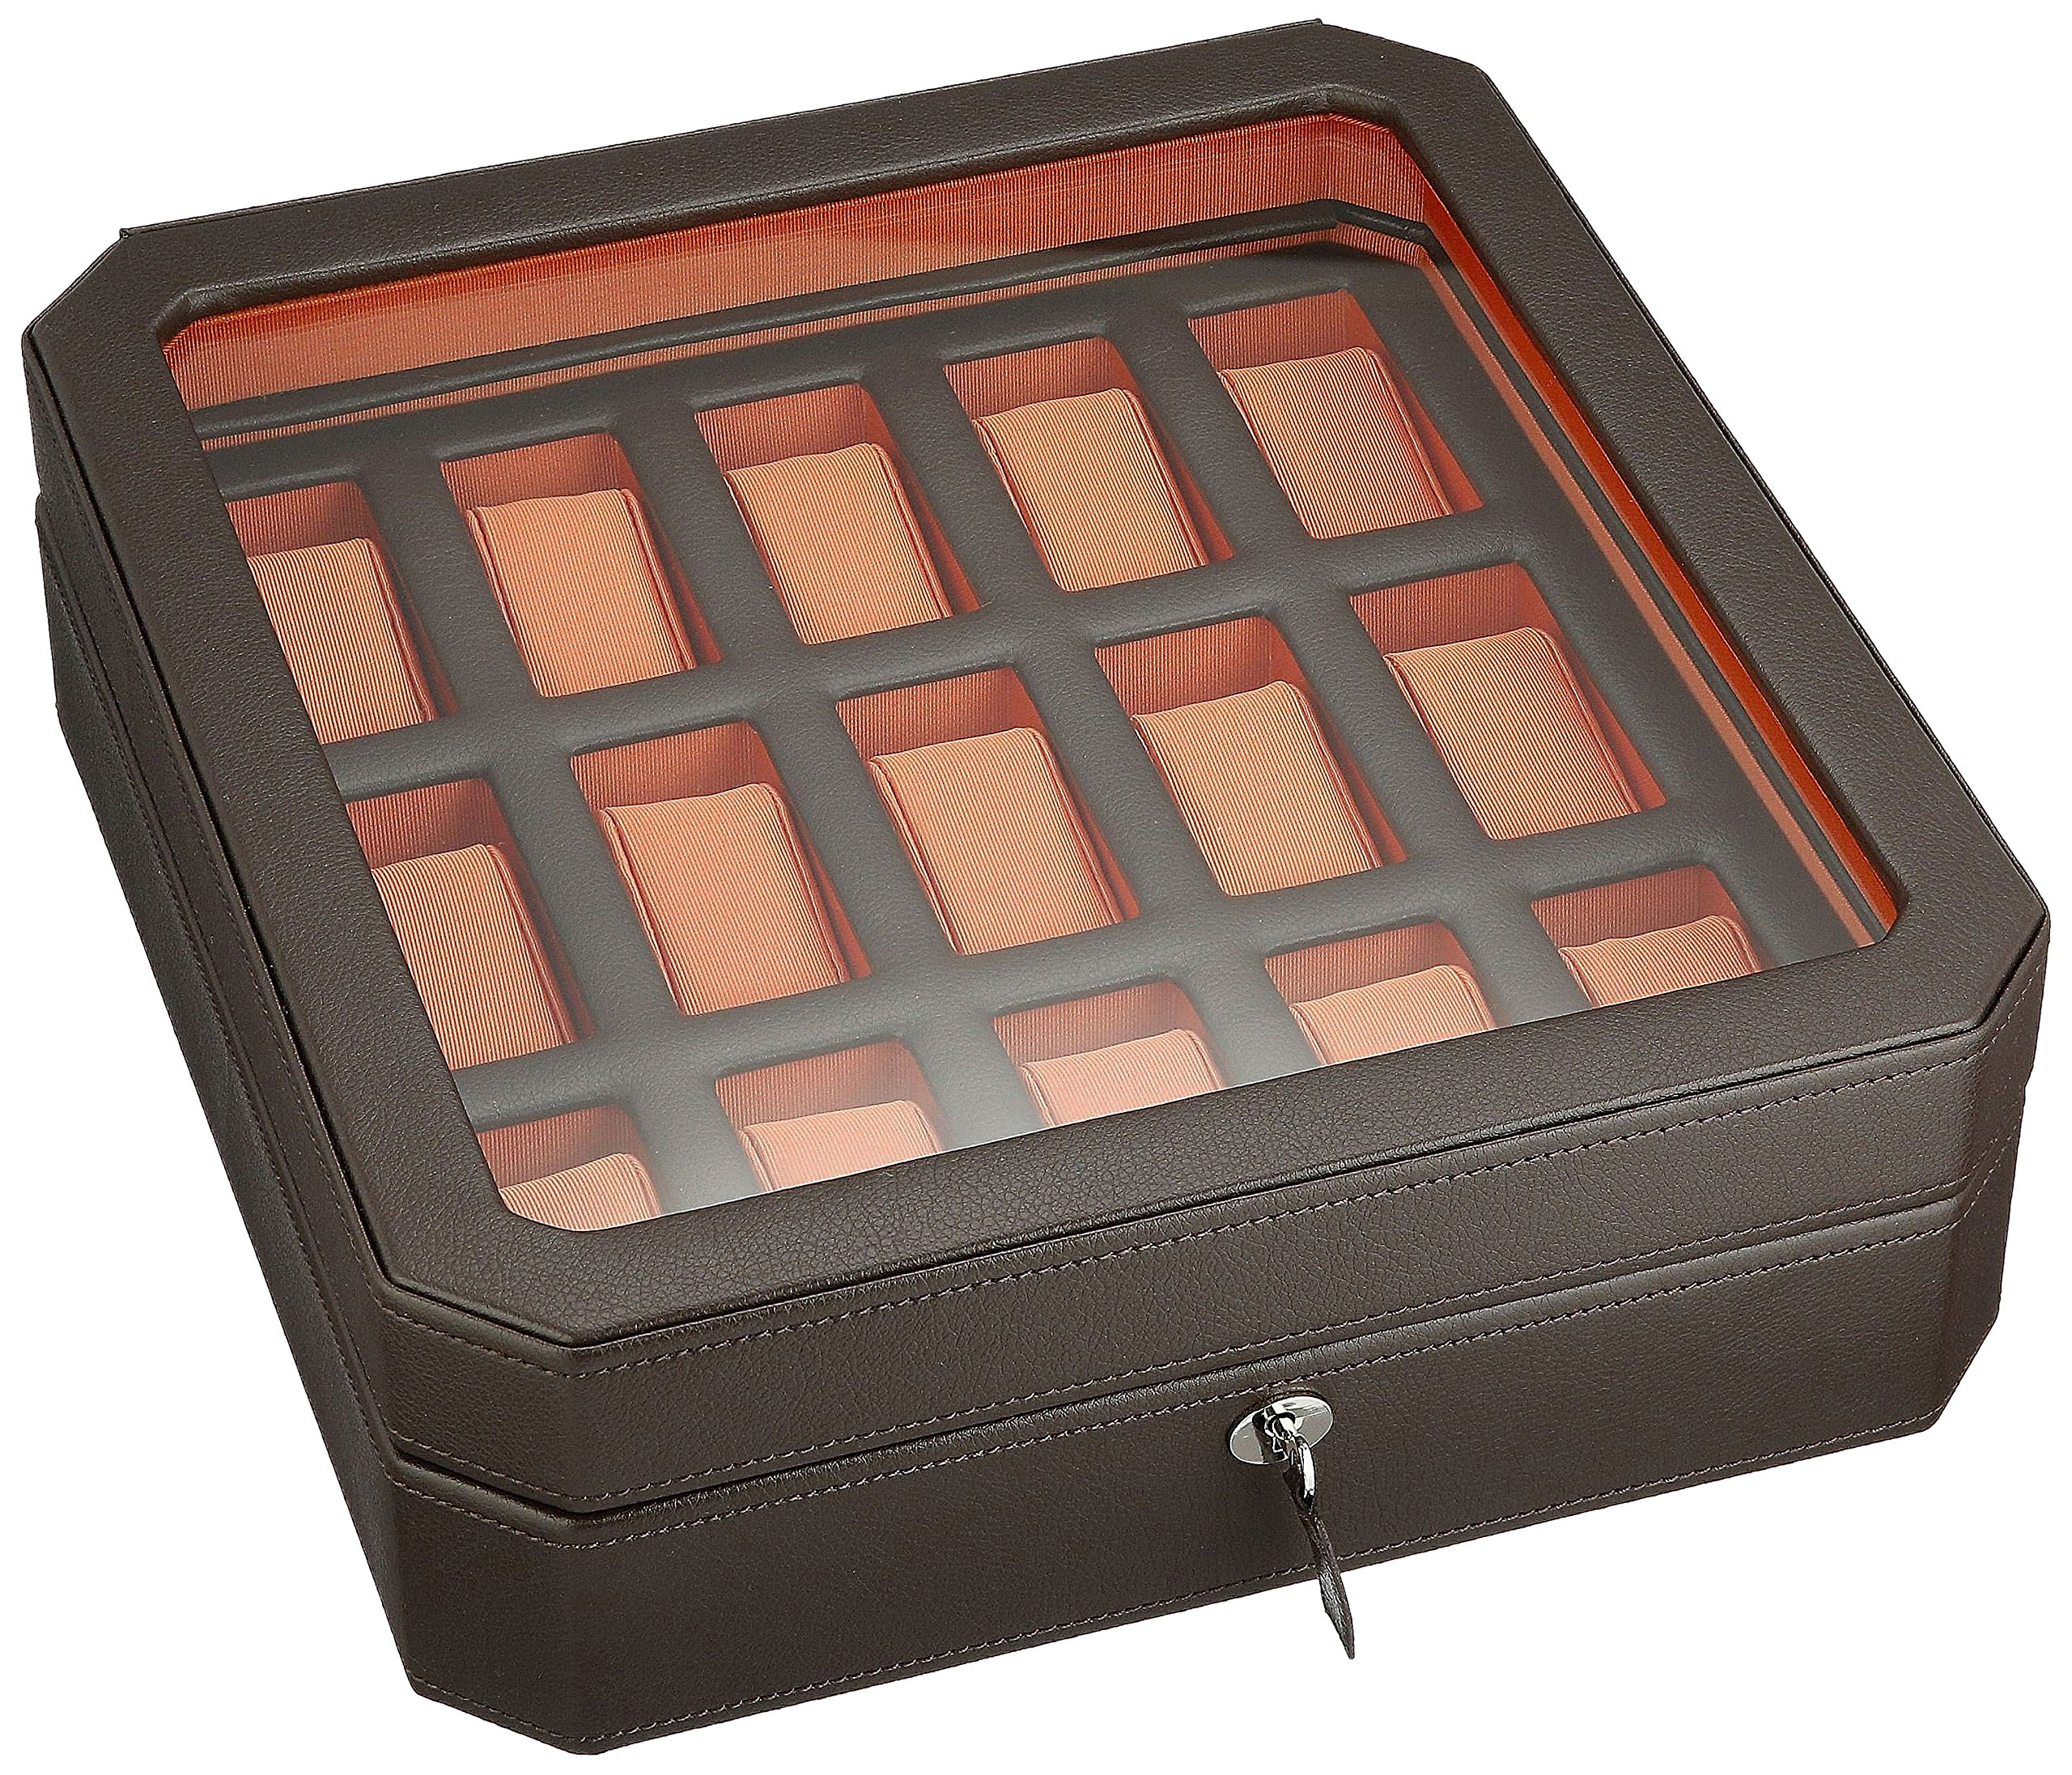 WOLF 458506 Windsor 15 Piece Watch Box with Cover, Brown/Orange by WOLF